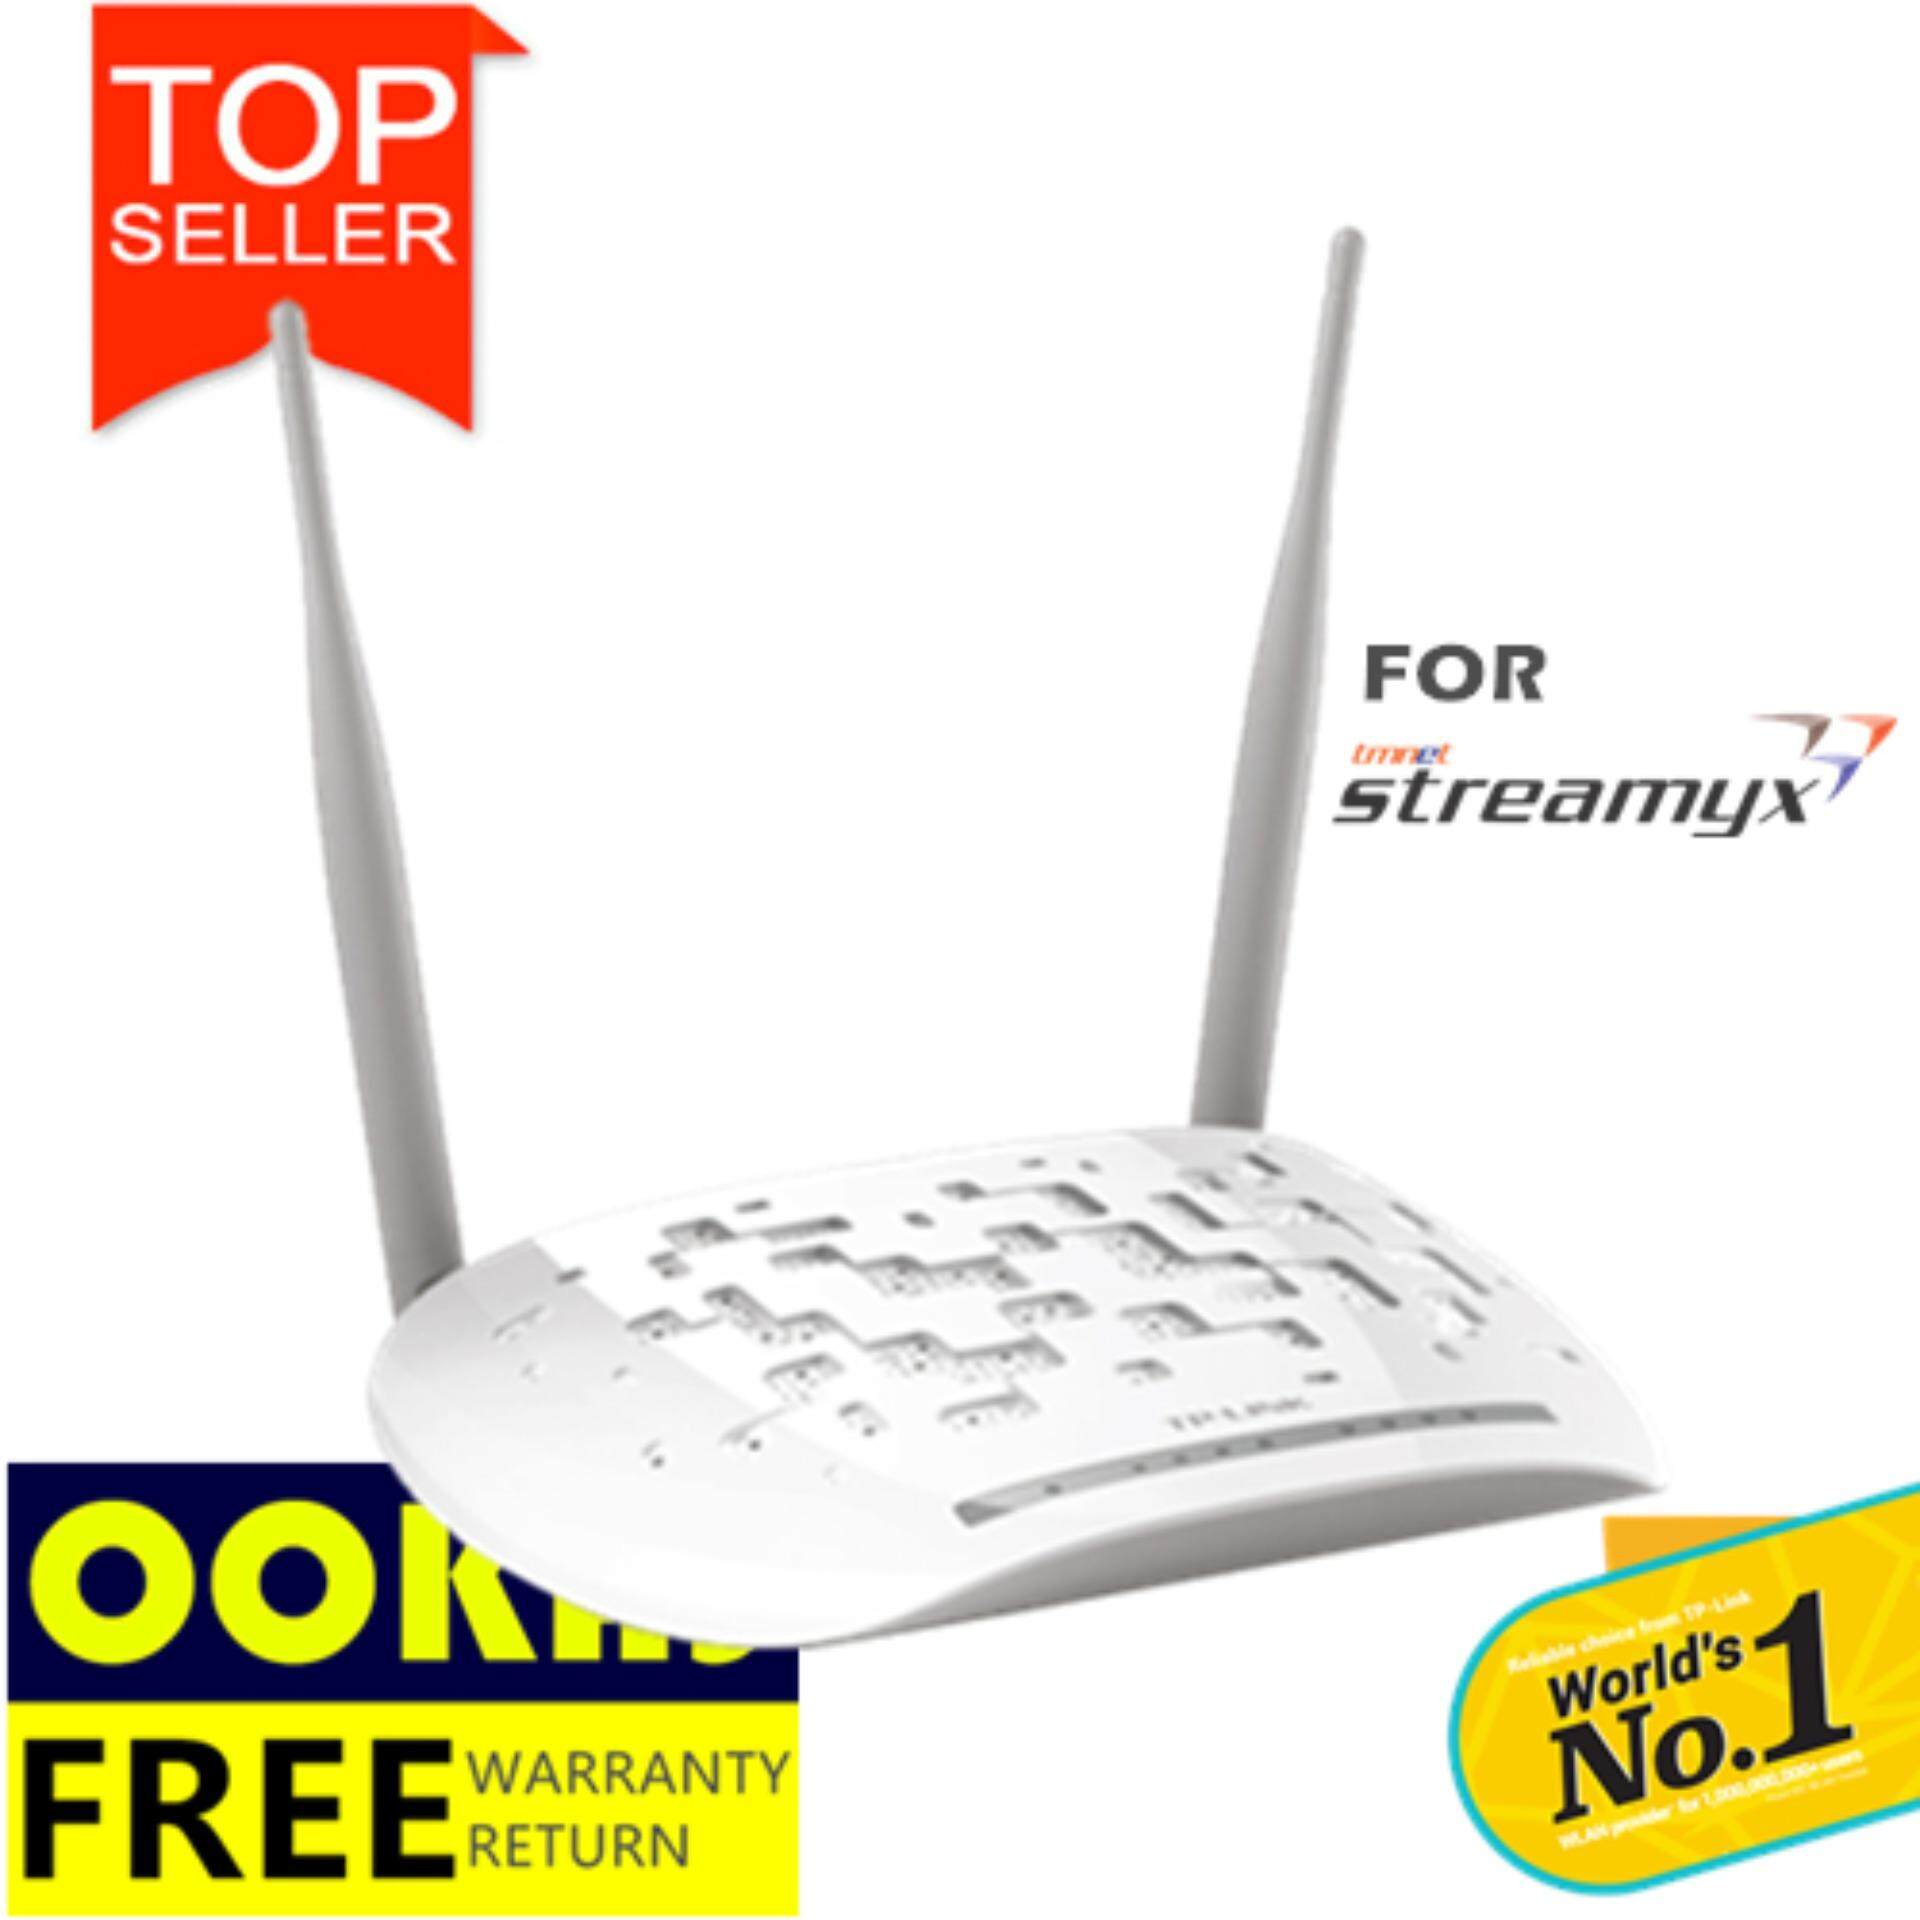 Tp Link Routers Price In Malaysia Best Lazada Tl Wr940n 450mbps Wireless N Router Td W8961n 300mbps Adsl2 Wifi Modem For Streamyx